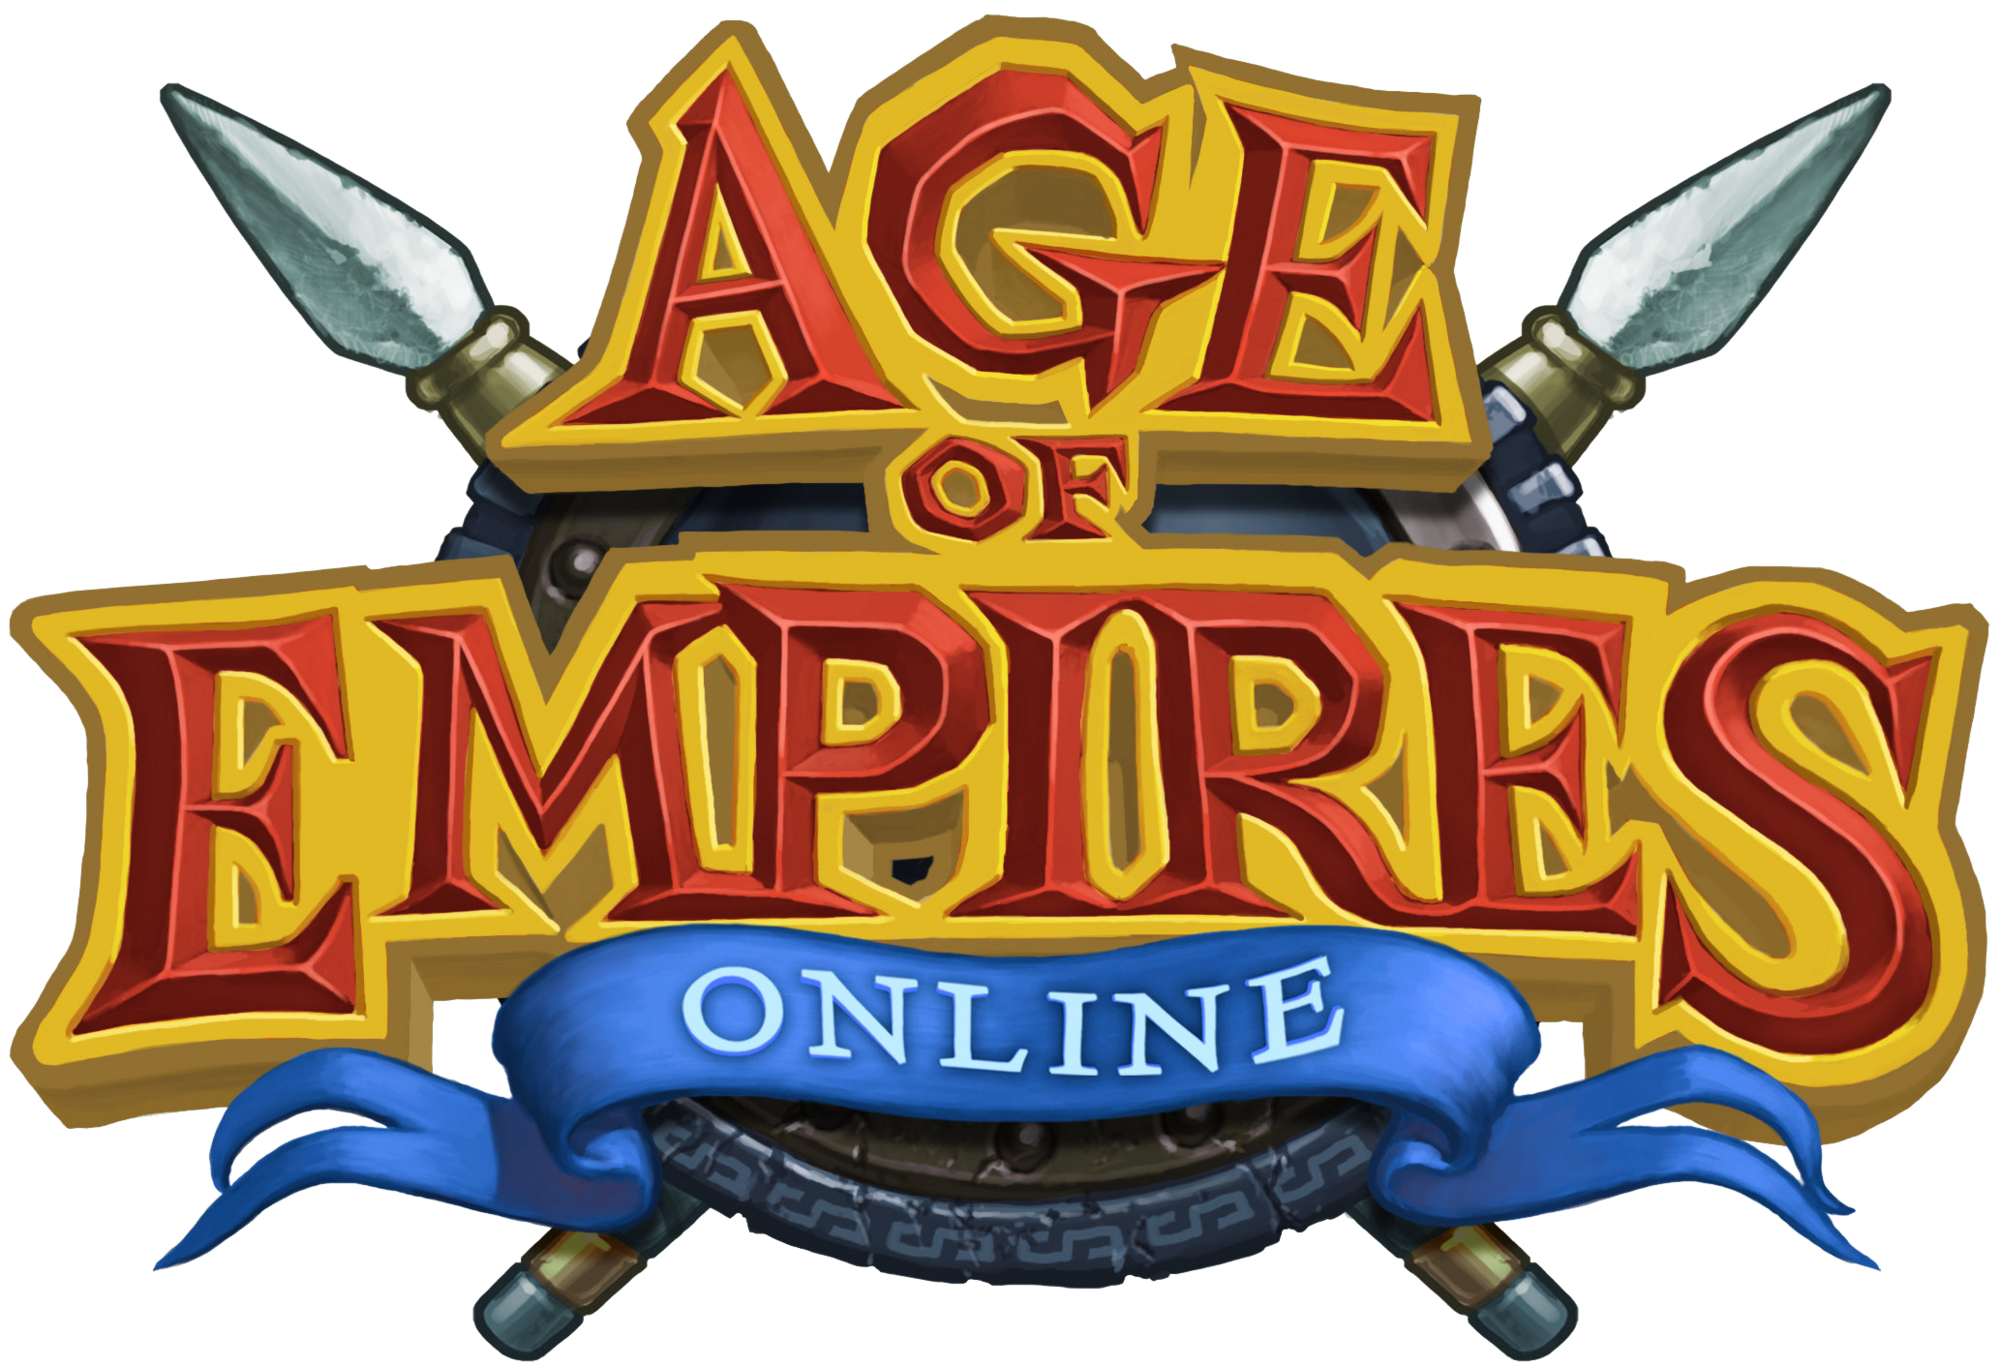 Age of empires online download steam | Age of Empires